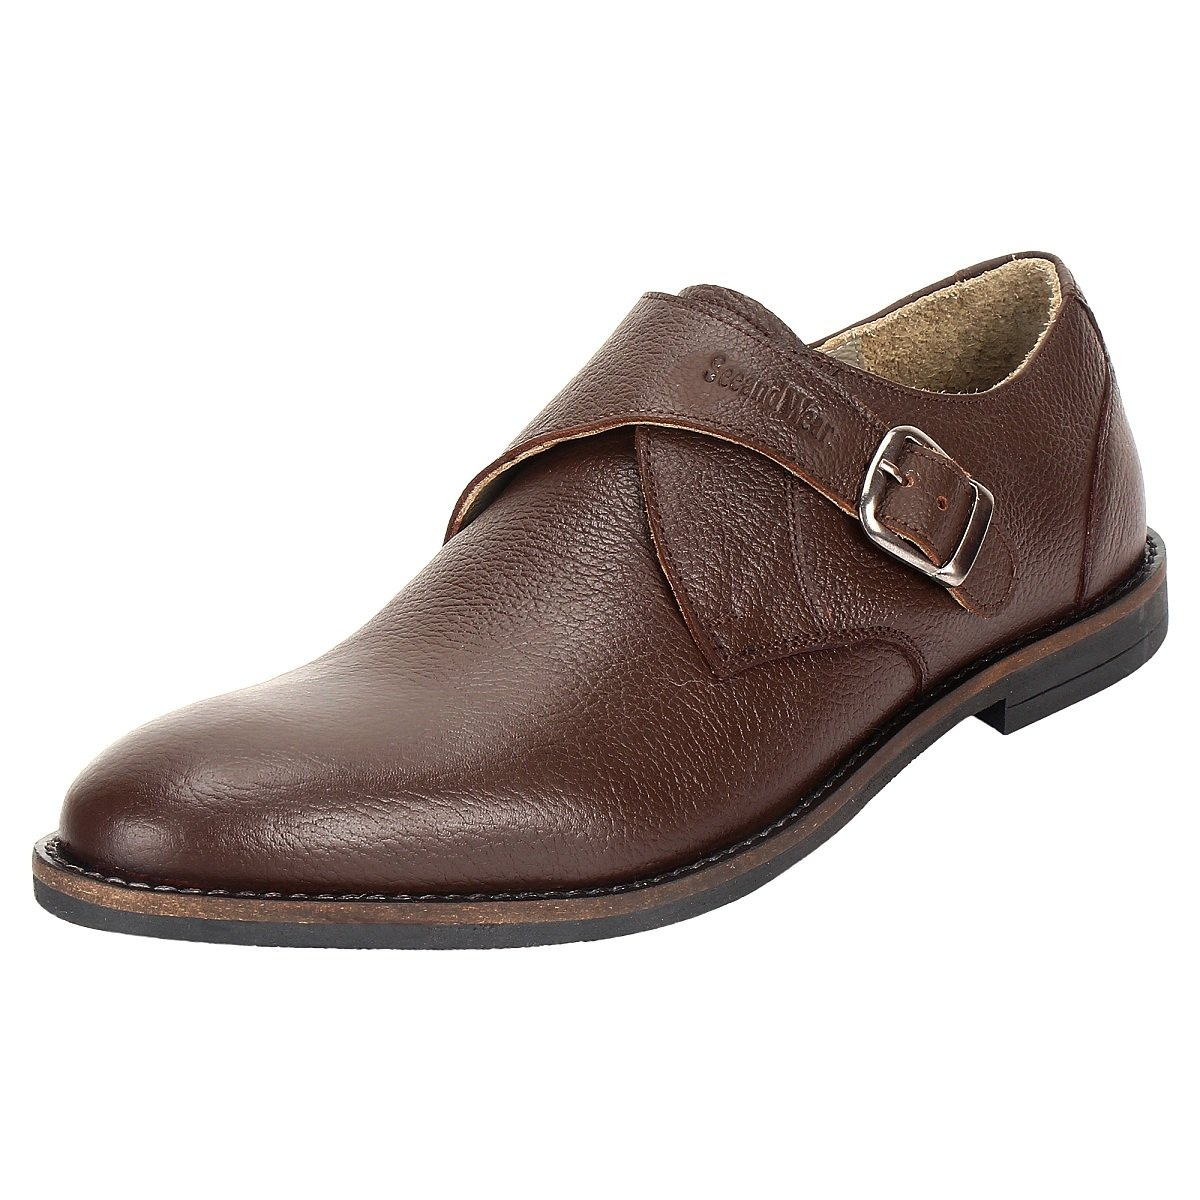 SeeandWear Brown Monk Strap Shoes - Minor Defect - SeeandWear